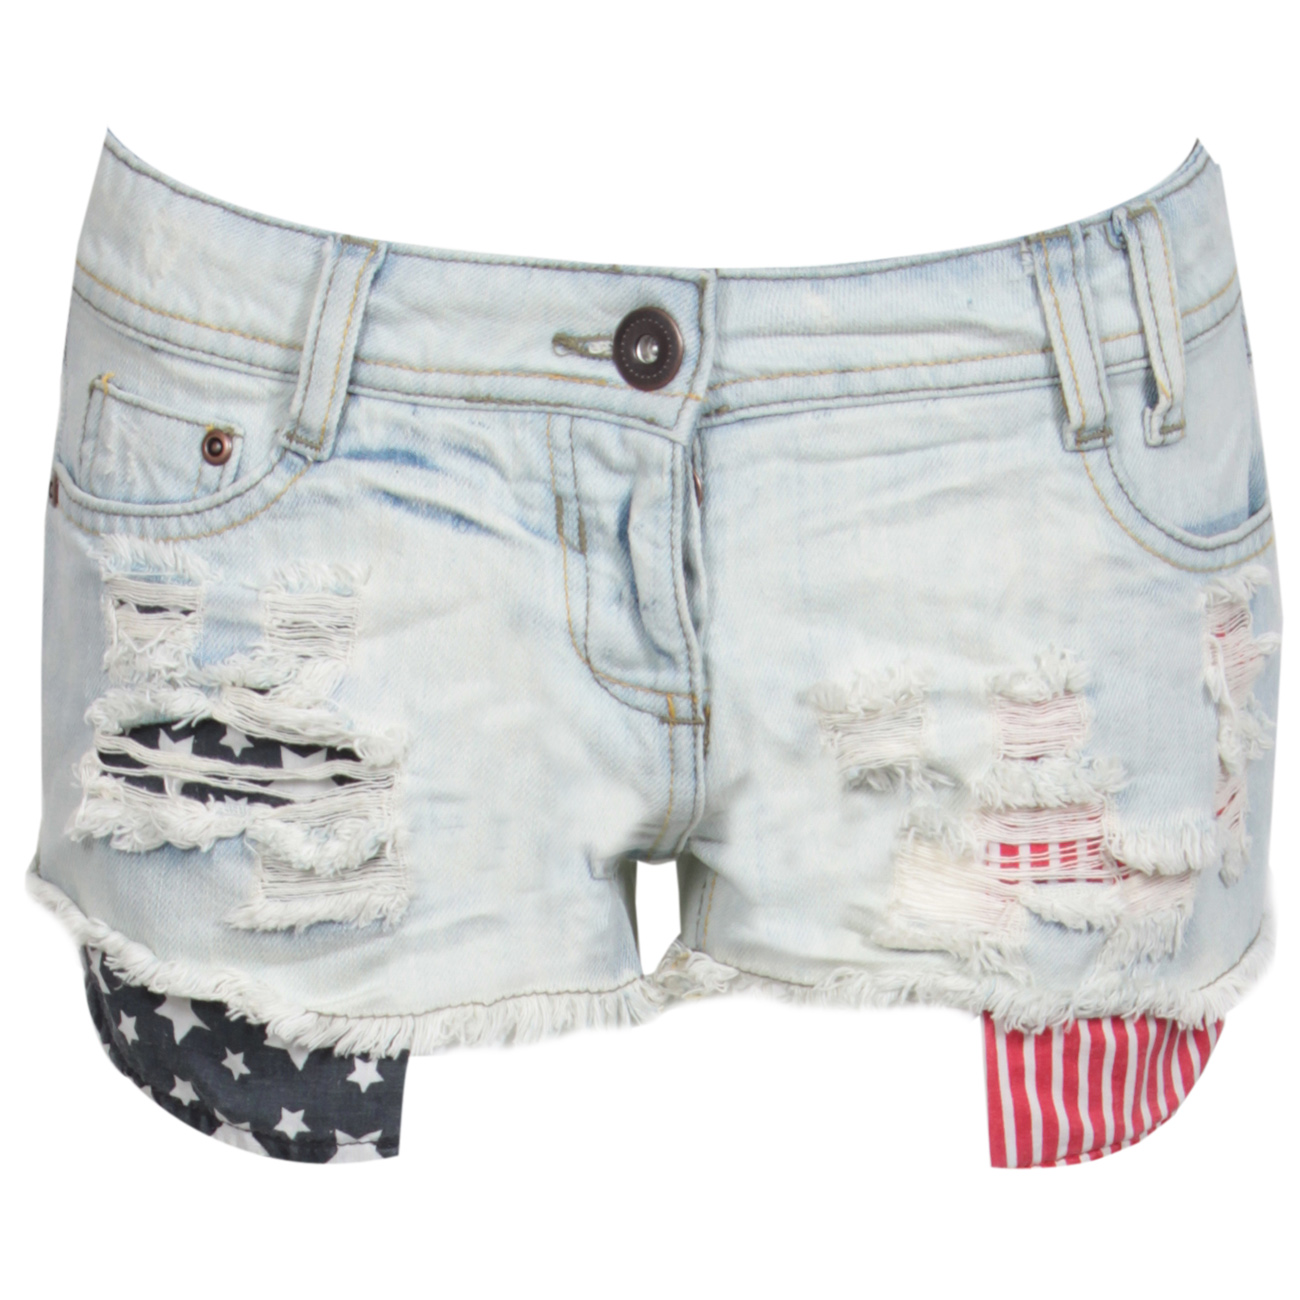 American Flag Denim Shorts Womens - The Else